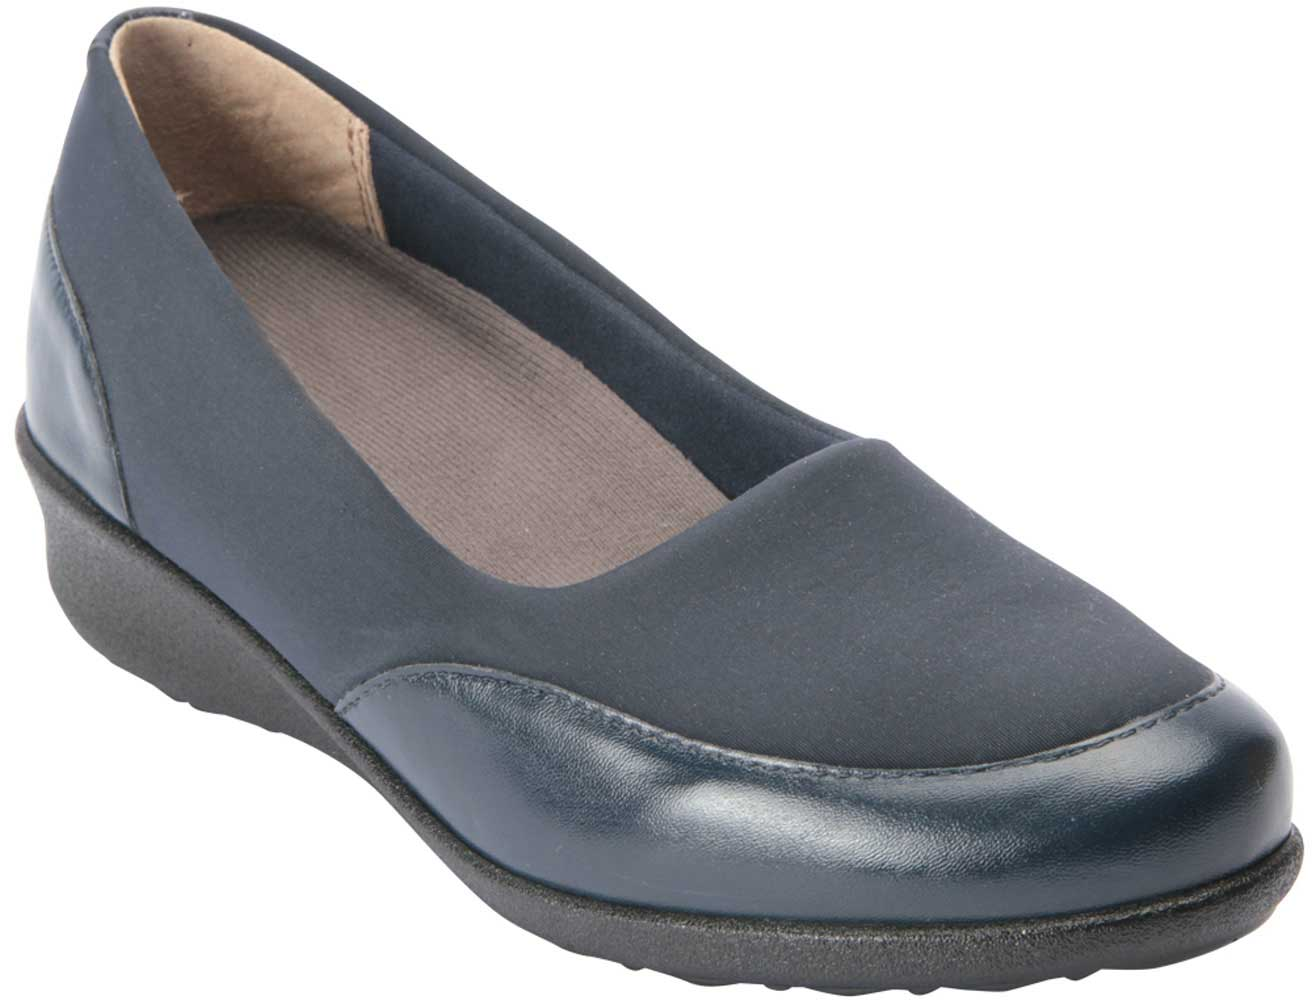 Dress Shoes With Removable Footbeds